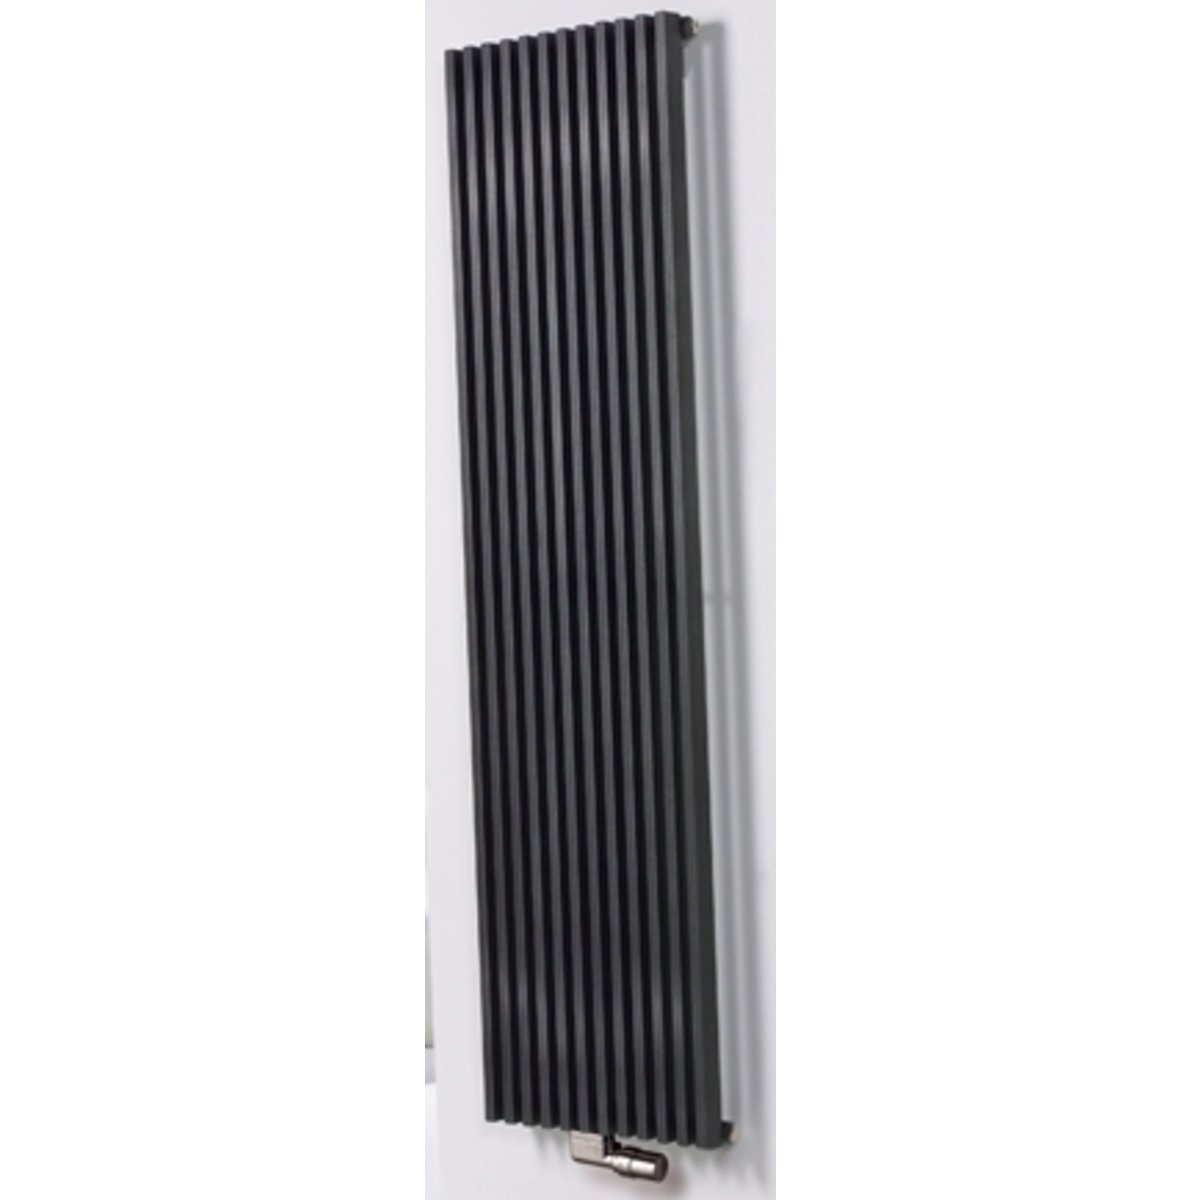 Wattage Radiator Vasco Zana Zv 1 Radiator 464x1600 N12 As 1188 1154 Watt 75 65 20